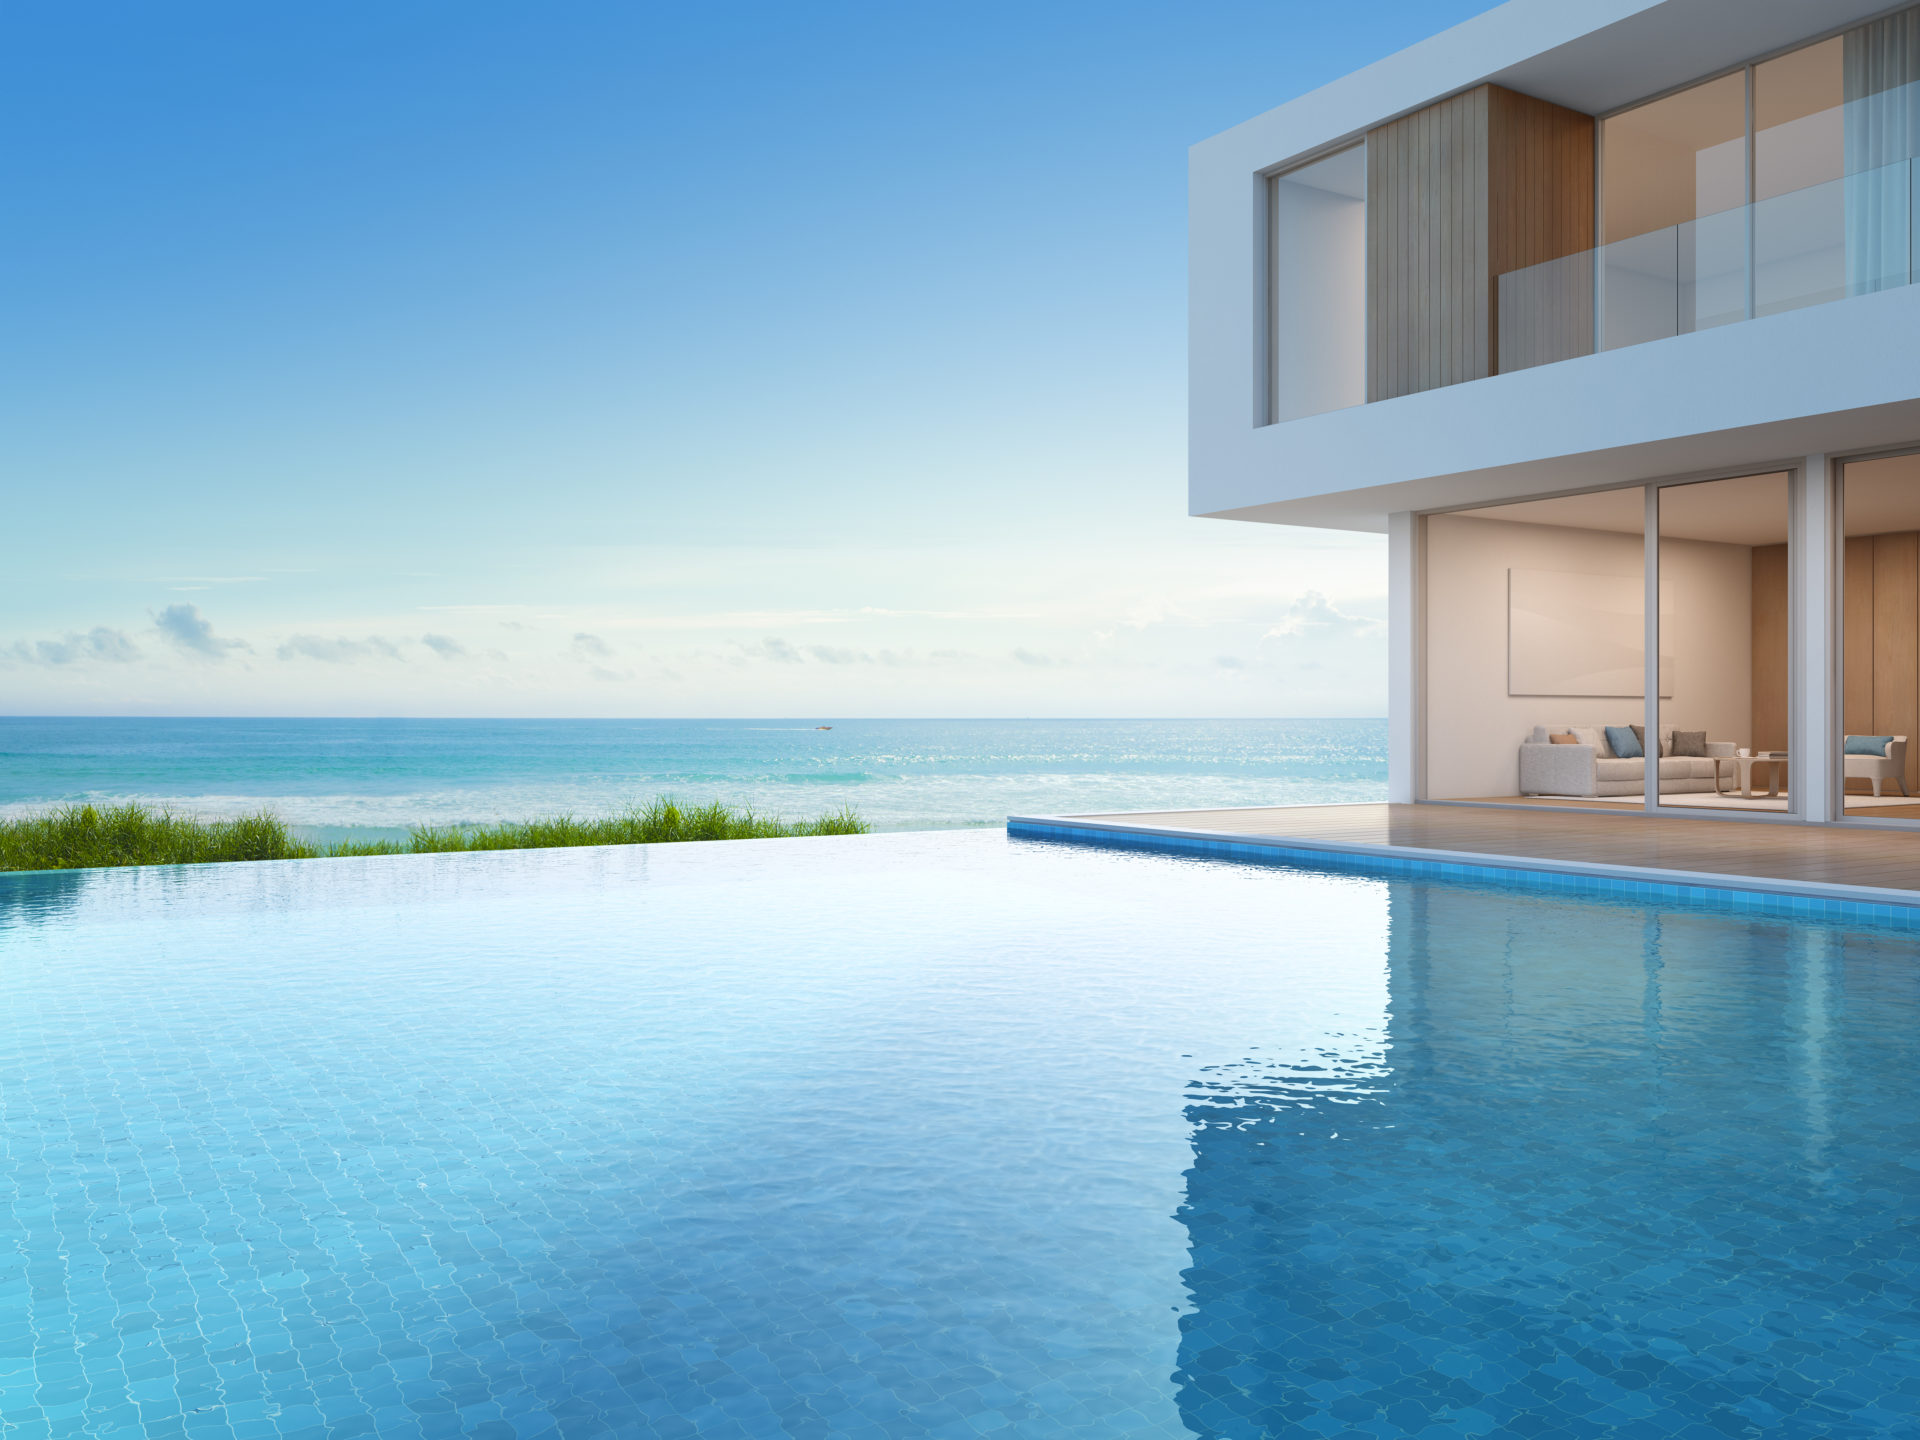 Luxury beach house with sea view swimming pool in modern design, Vacation home for big family